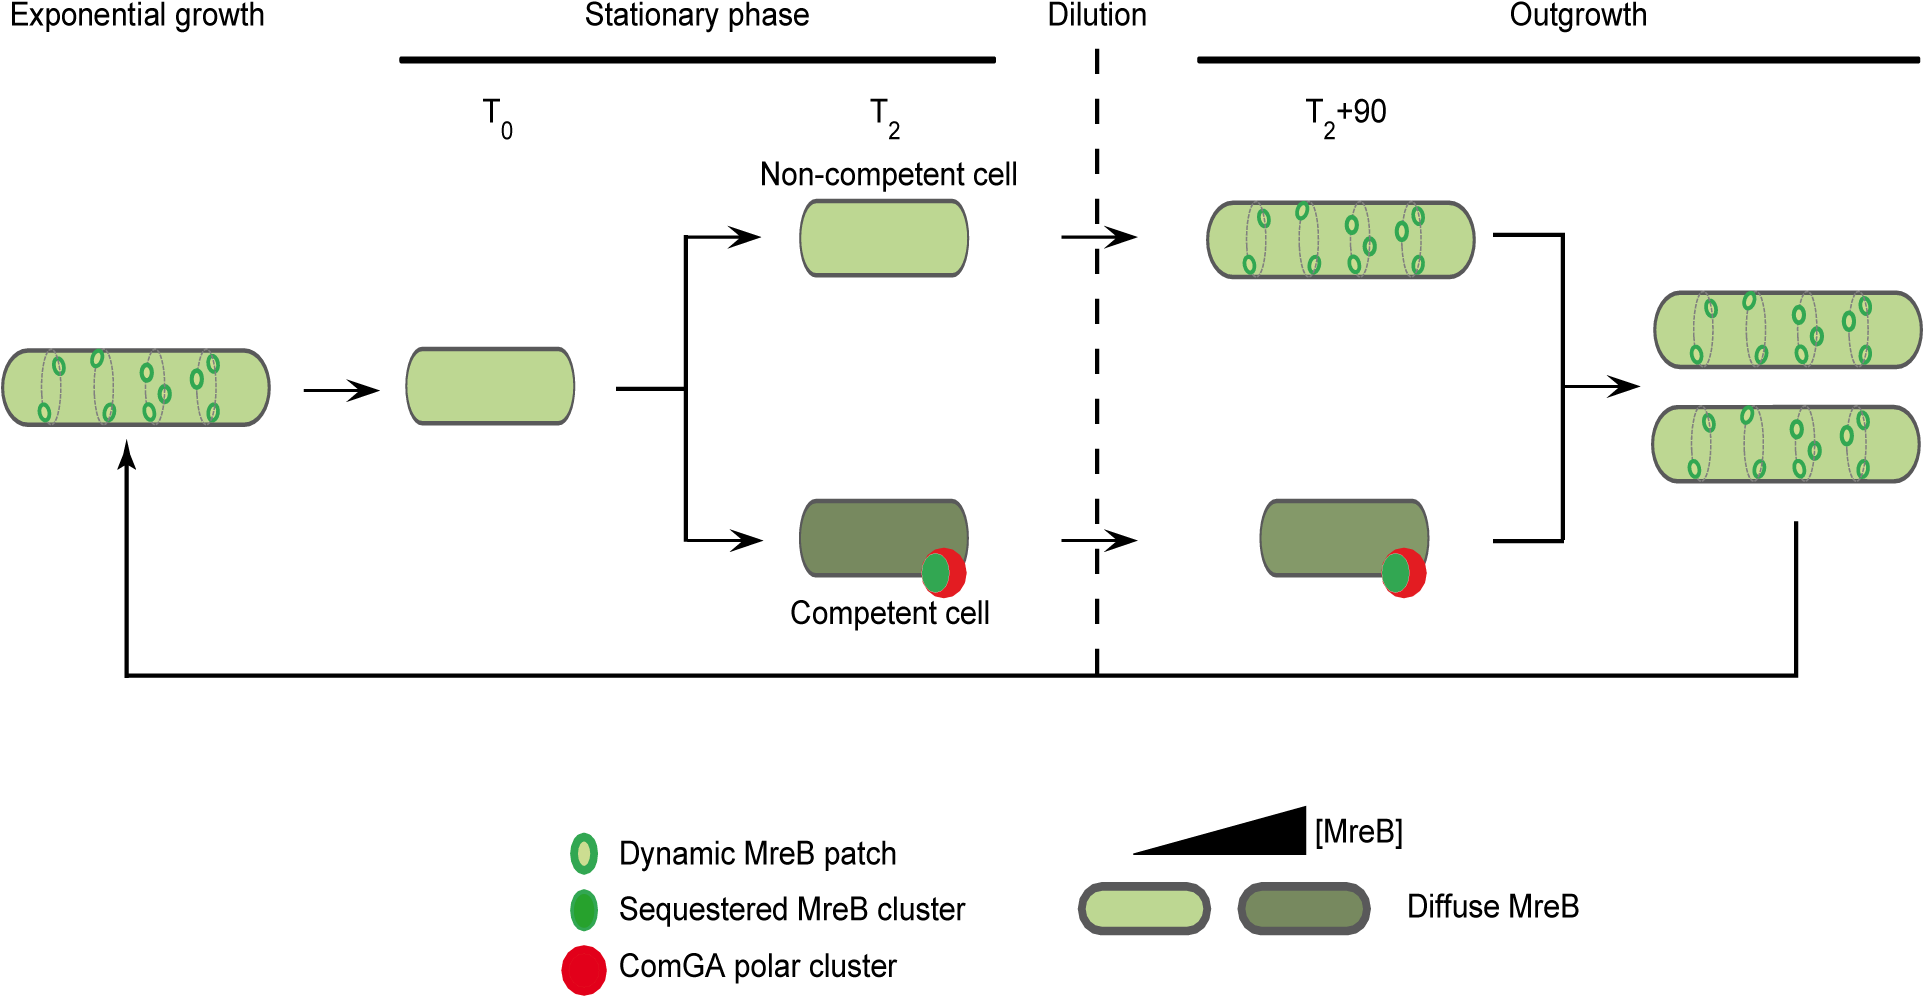 A model for sequestration of MreB by ComGA to prevent cell elongation and delay the escape from competence.